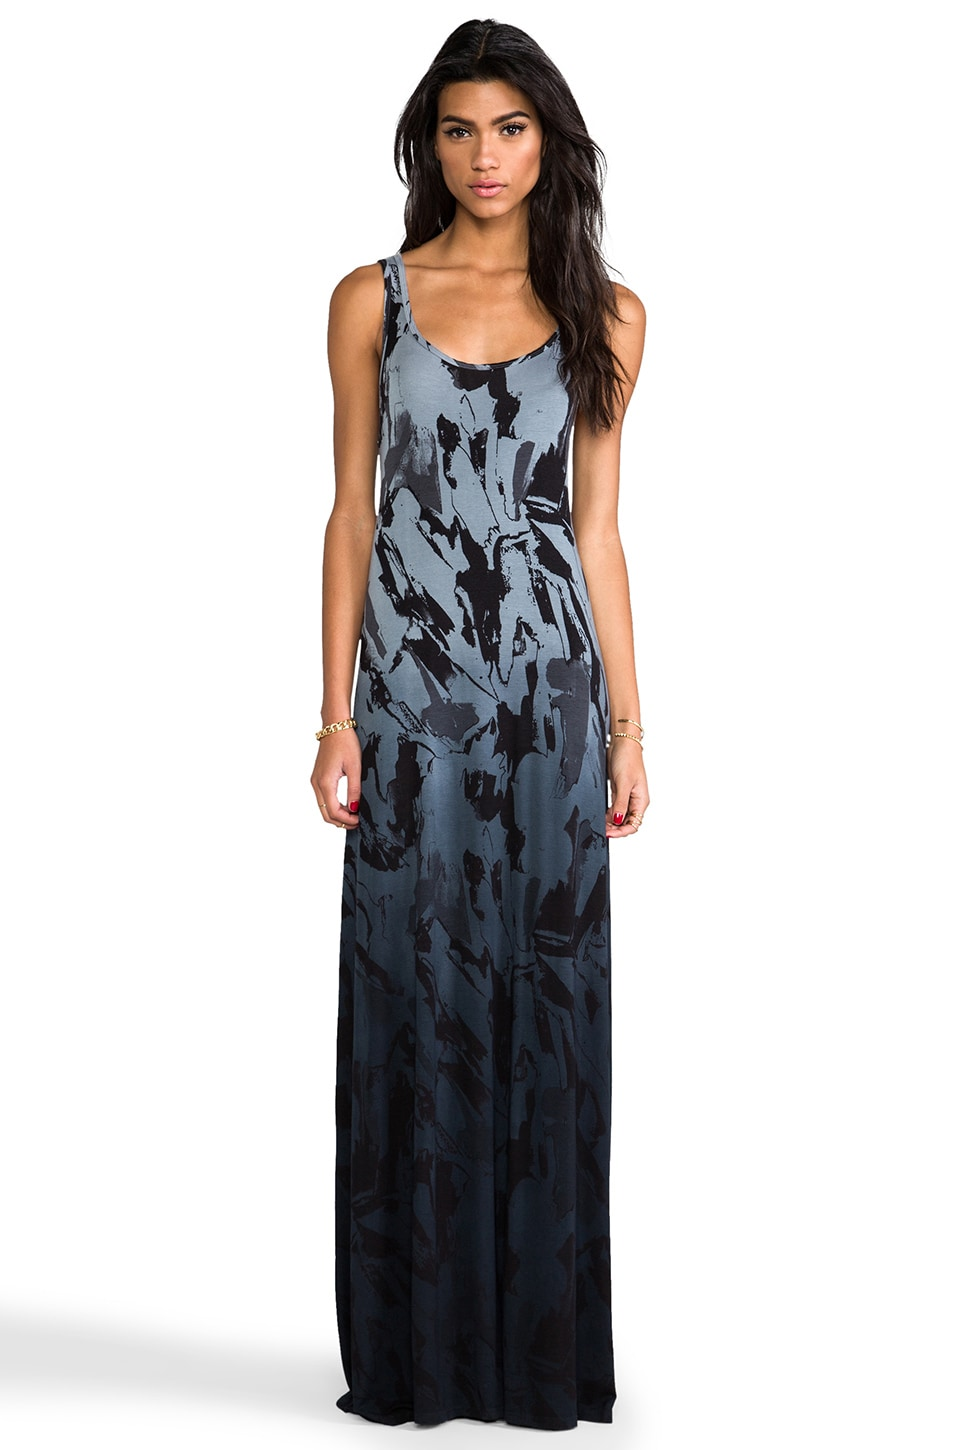 Michael Lauren Pax Tank Maxi Dress in Charcoal Ombre